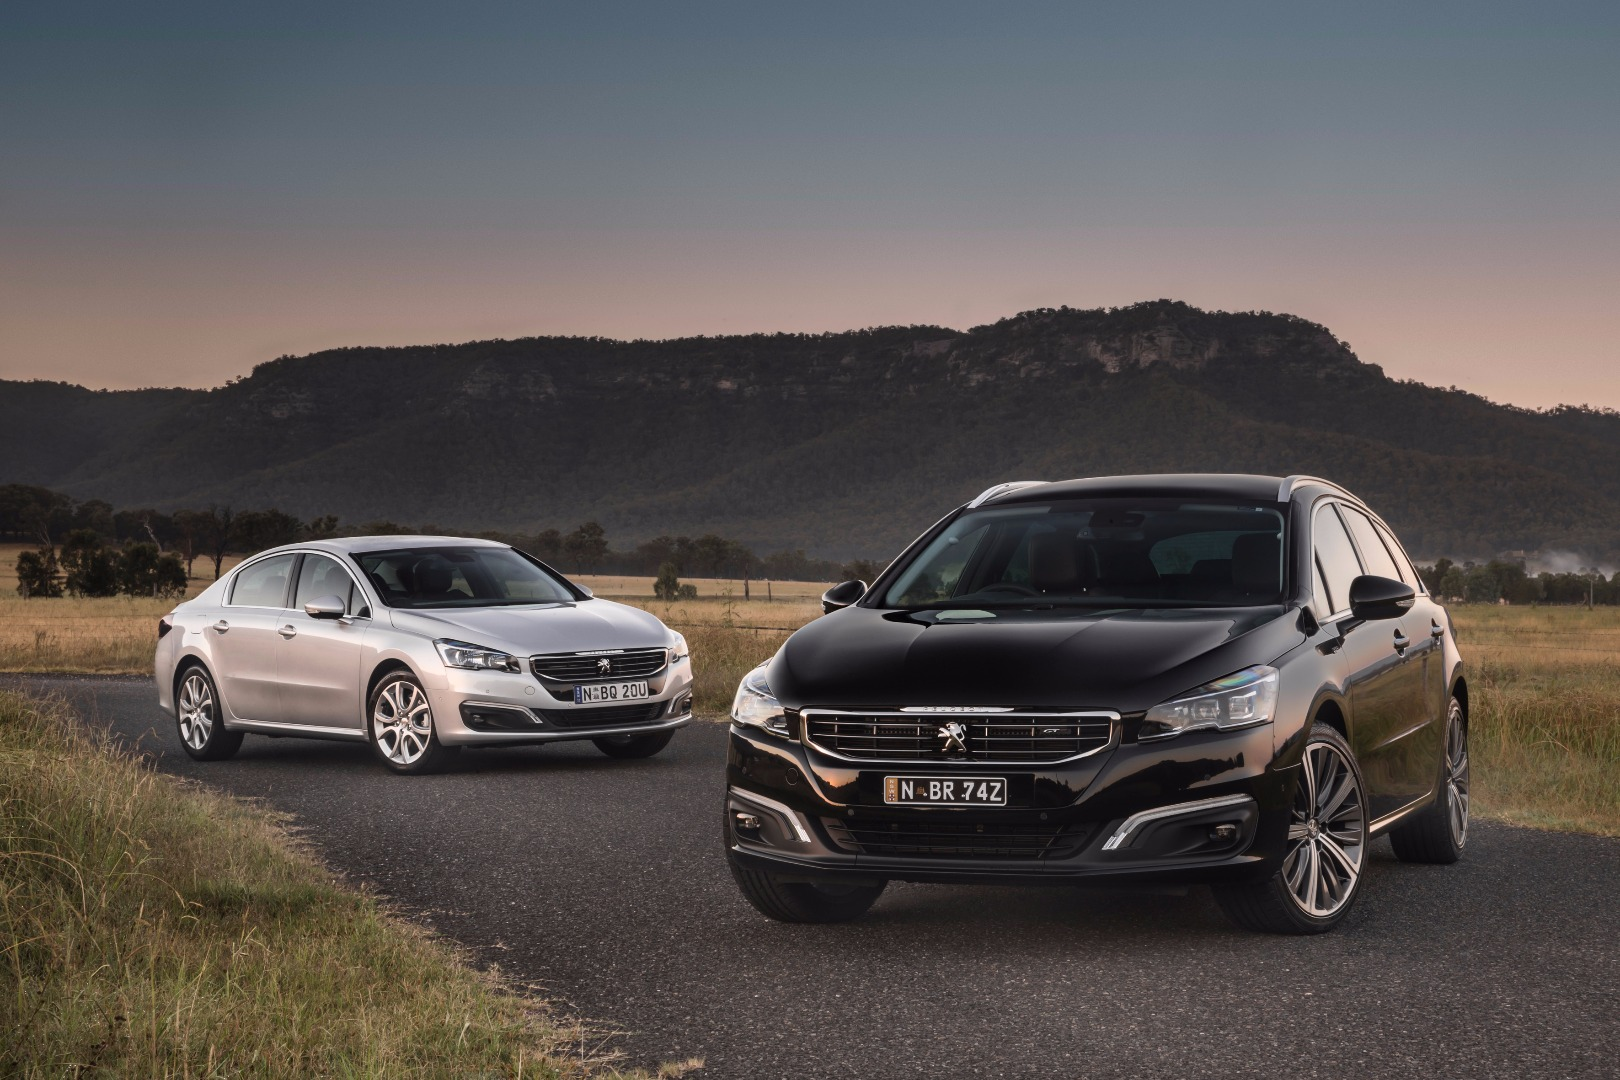 Review - 2017 Peugeot 508 - Review